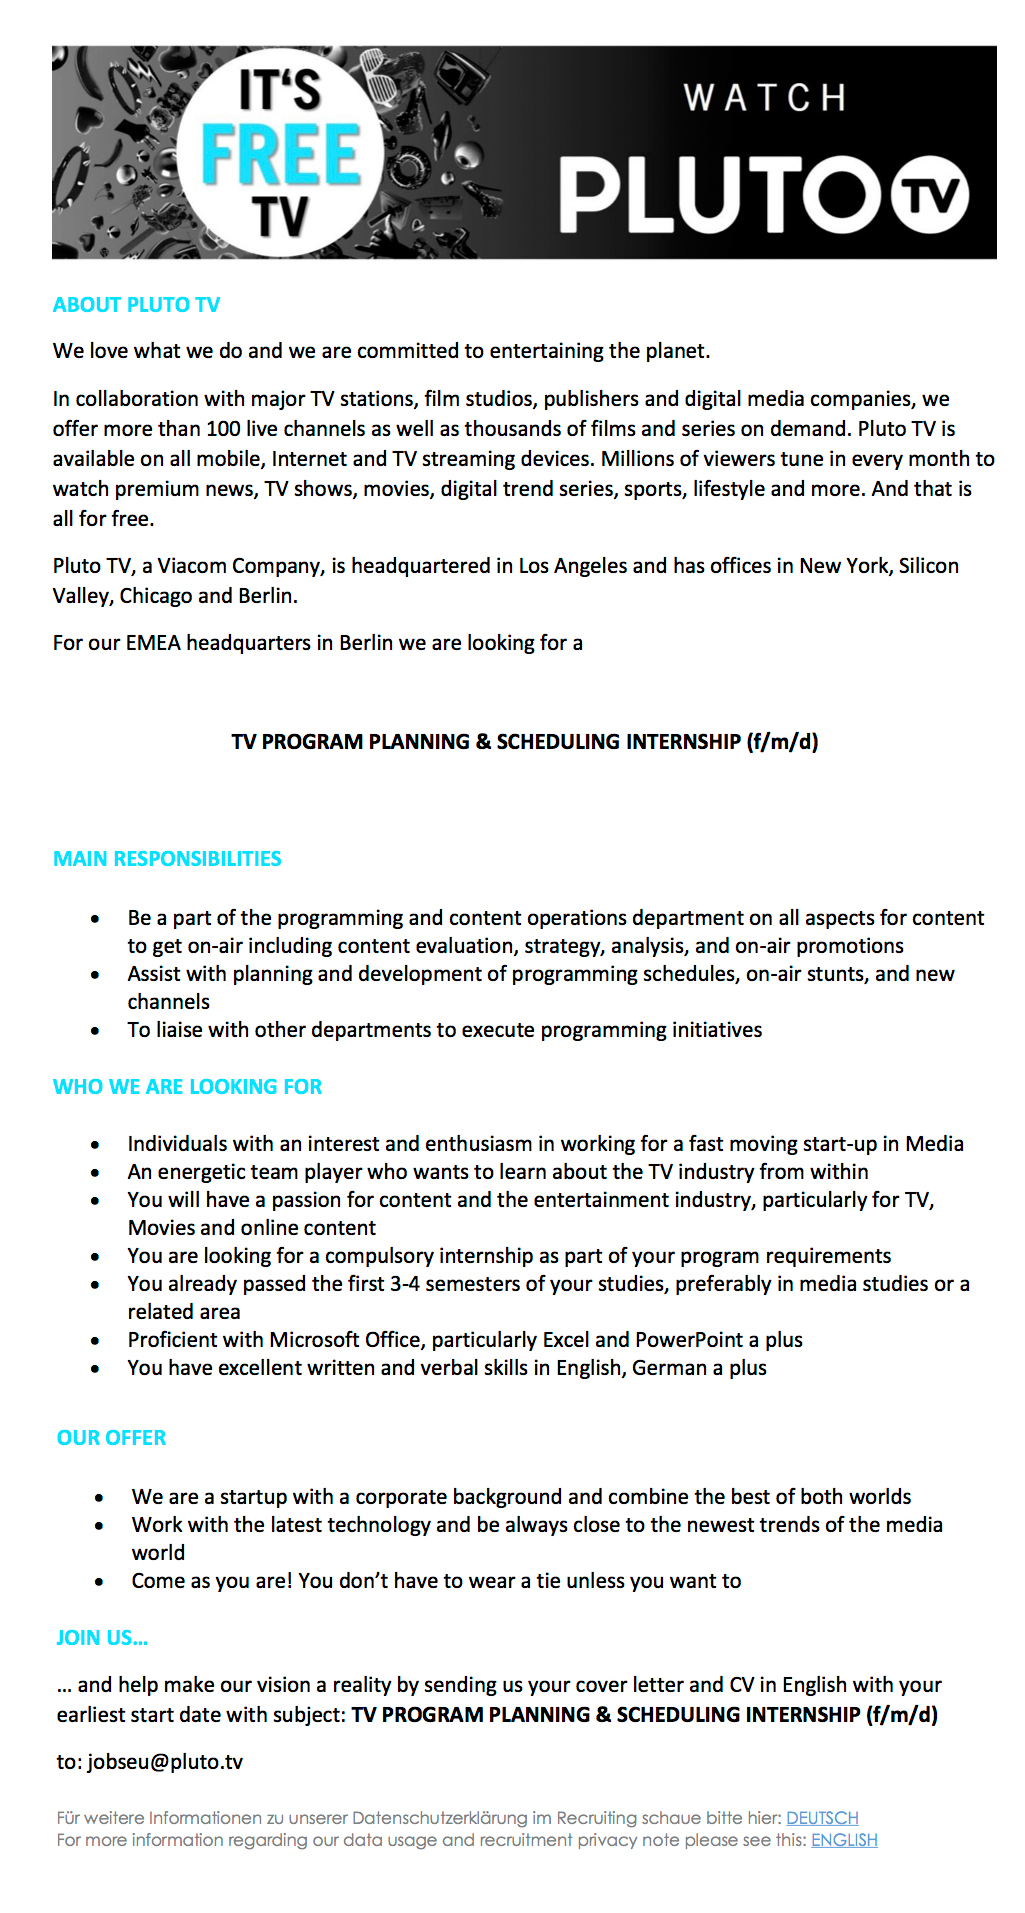 TV Program Planning & Scheduling Internship (f/m/d)